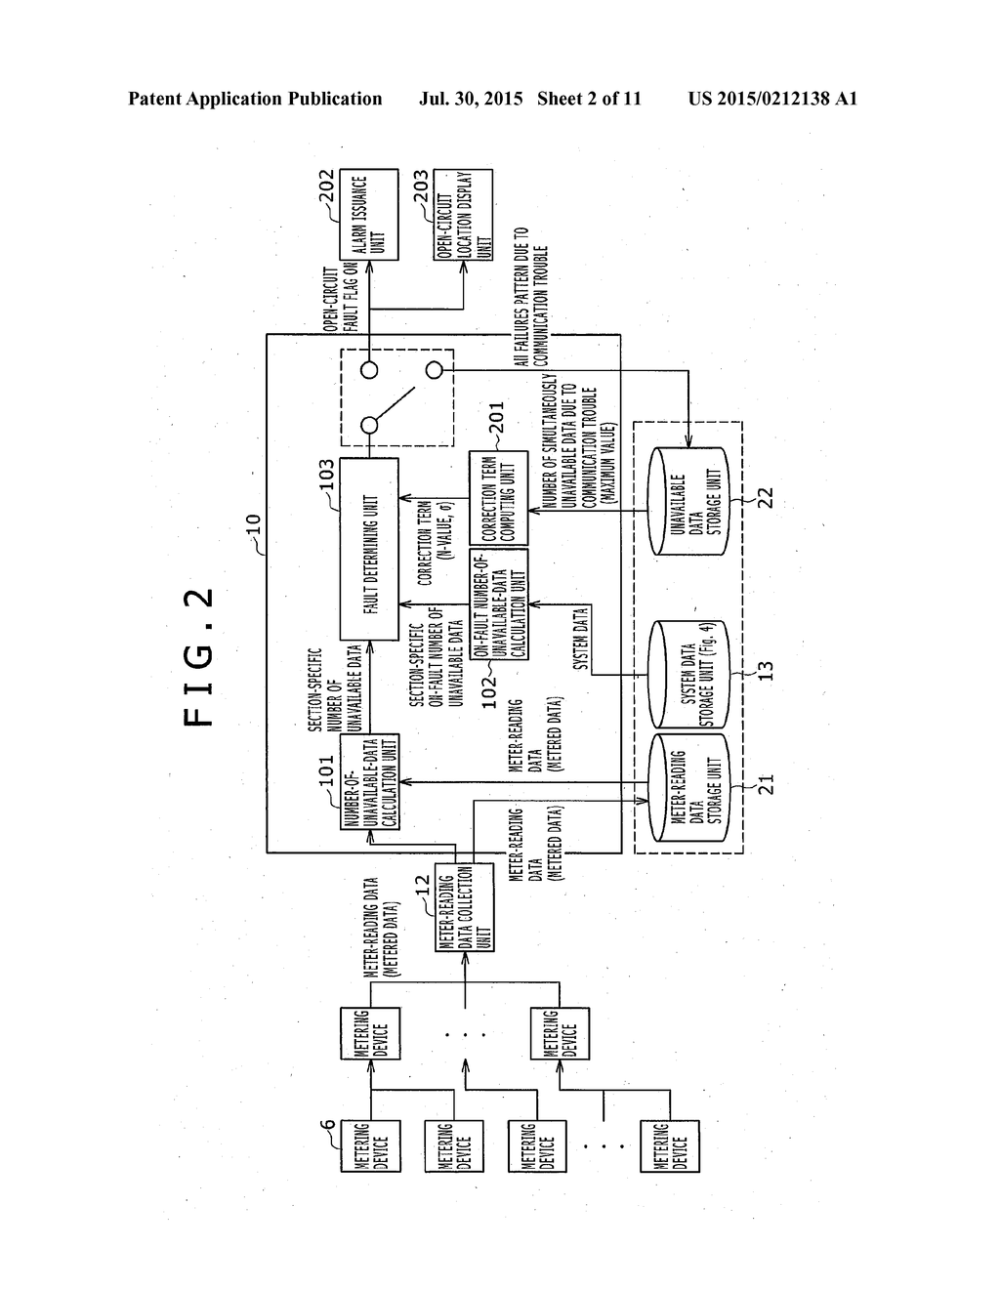 medium resolution of method for detecting open circuit faults in electric power distribution system and power distribution facilities management system diagram schematic